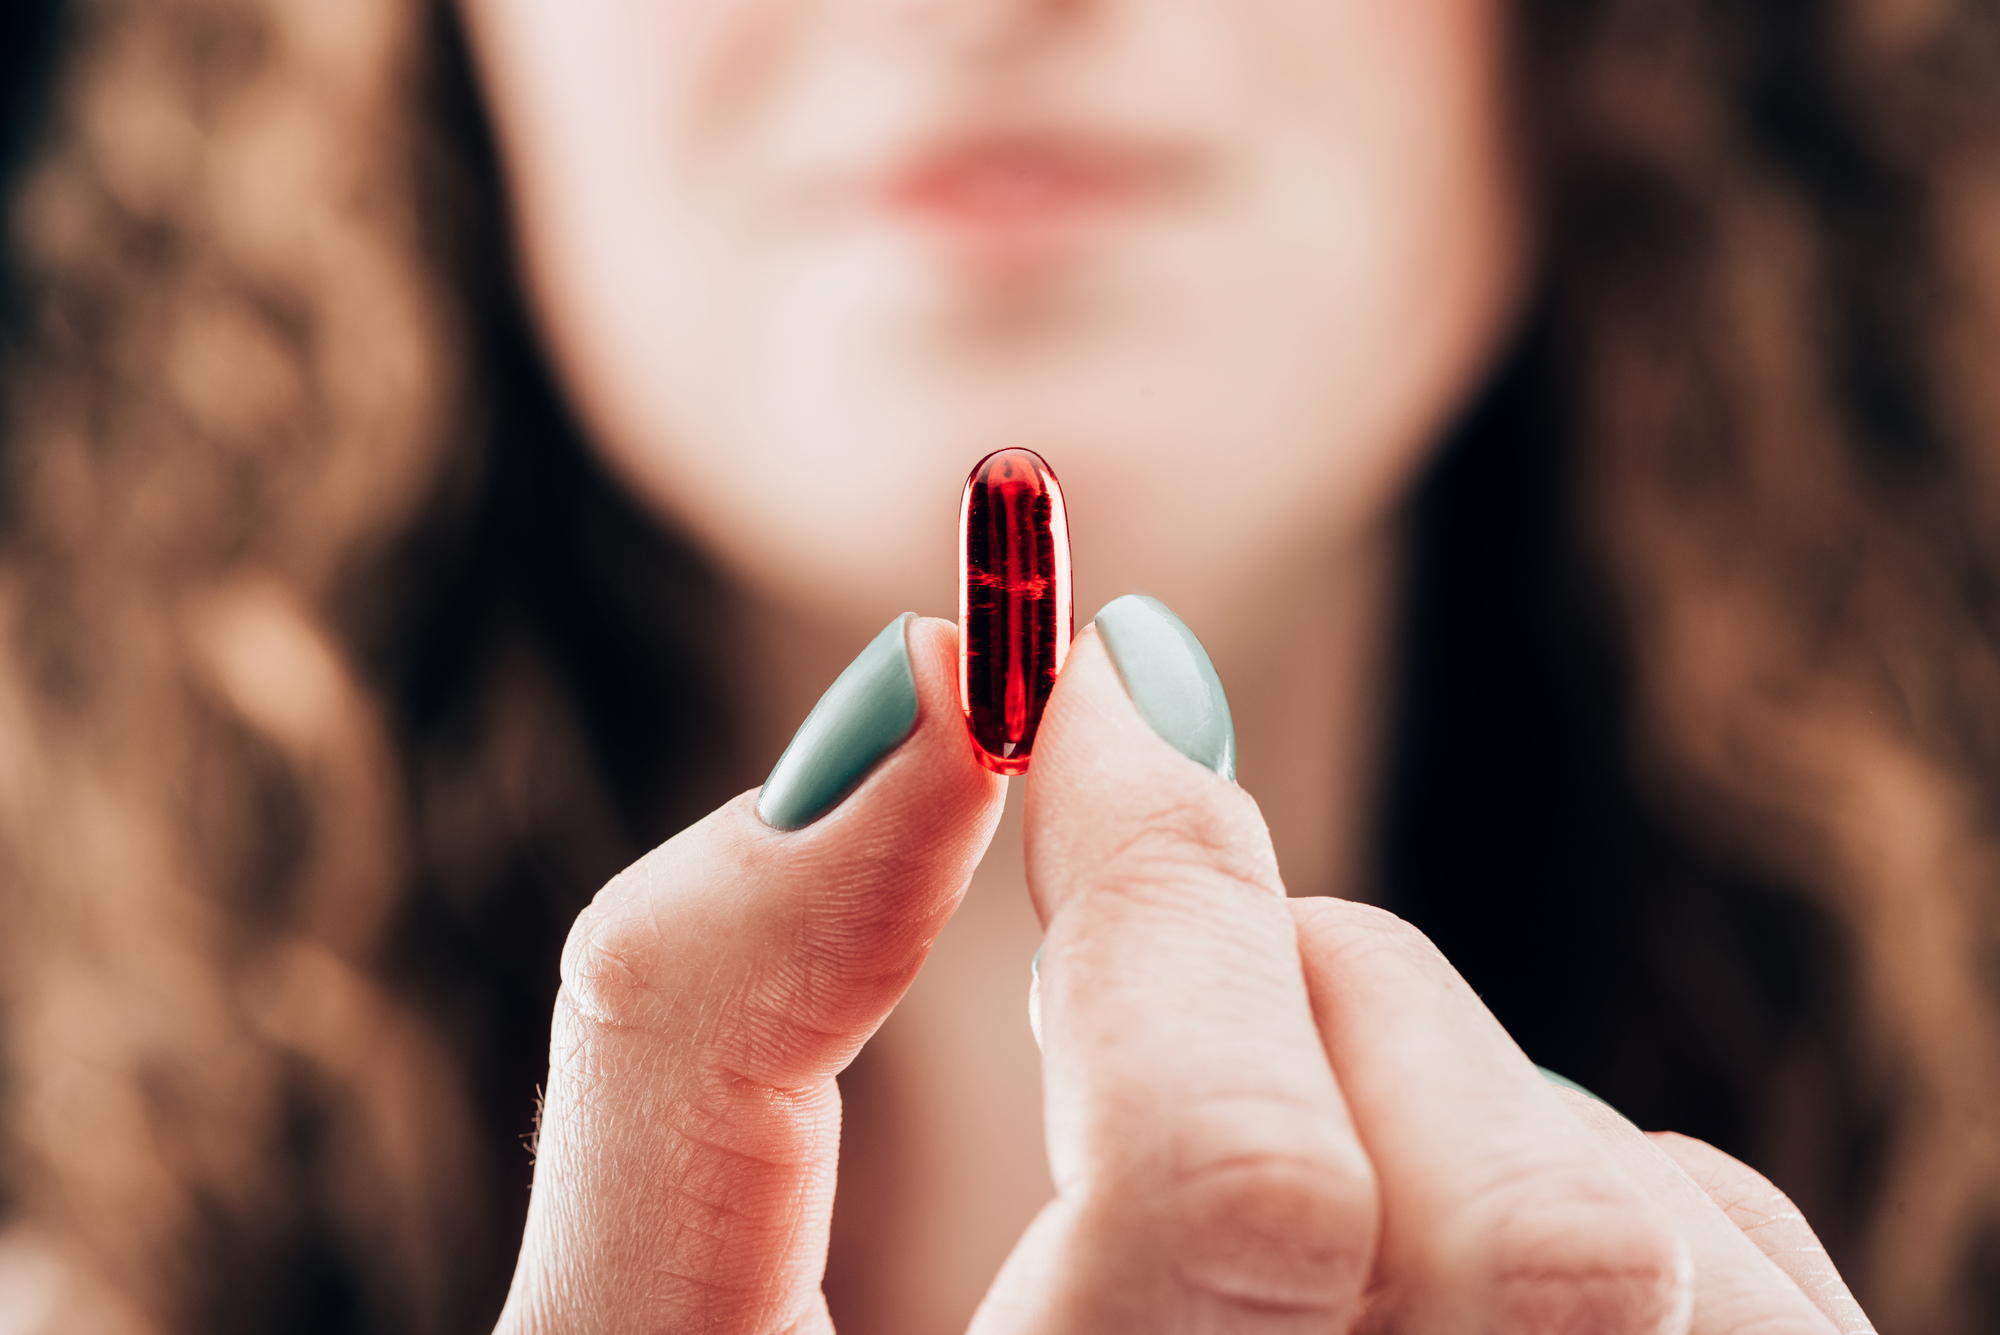 An oral insulin pill for diabetics could soon be a reality